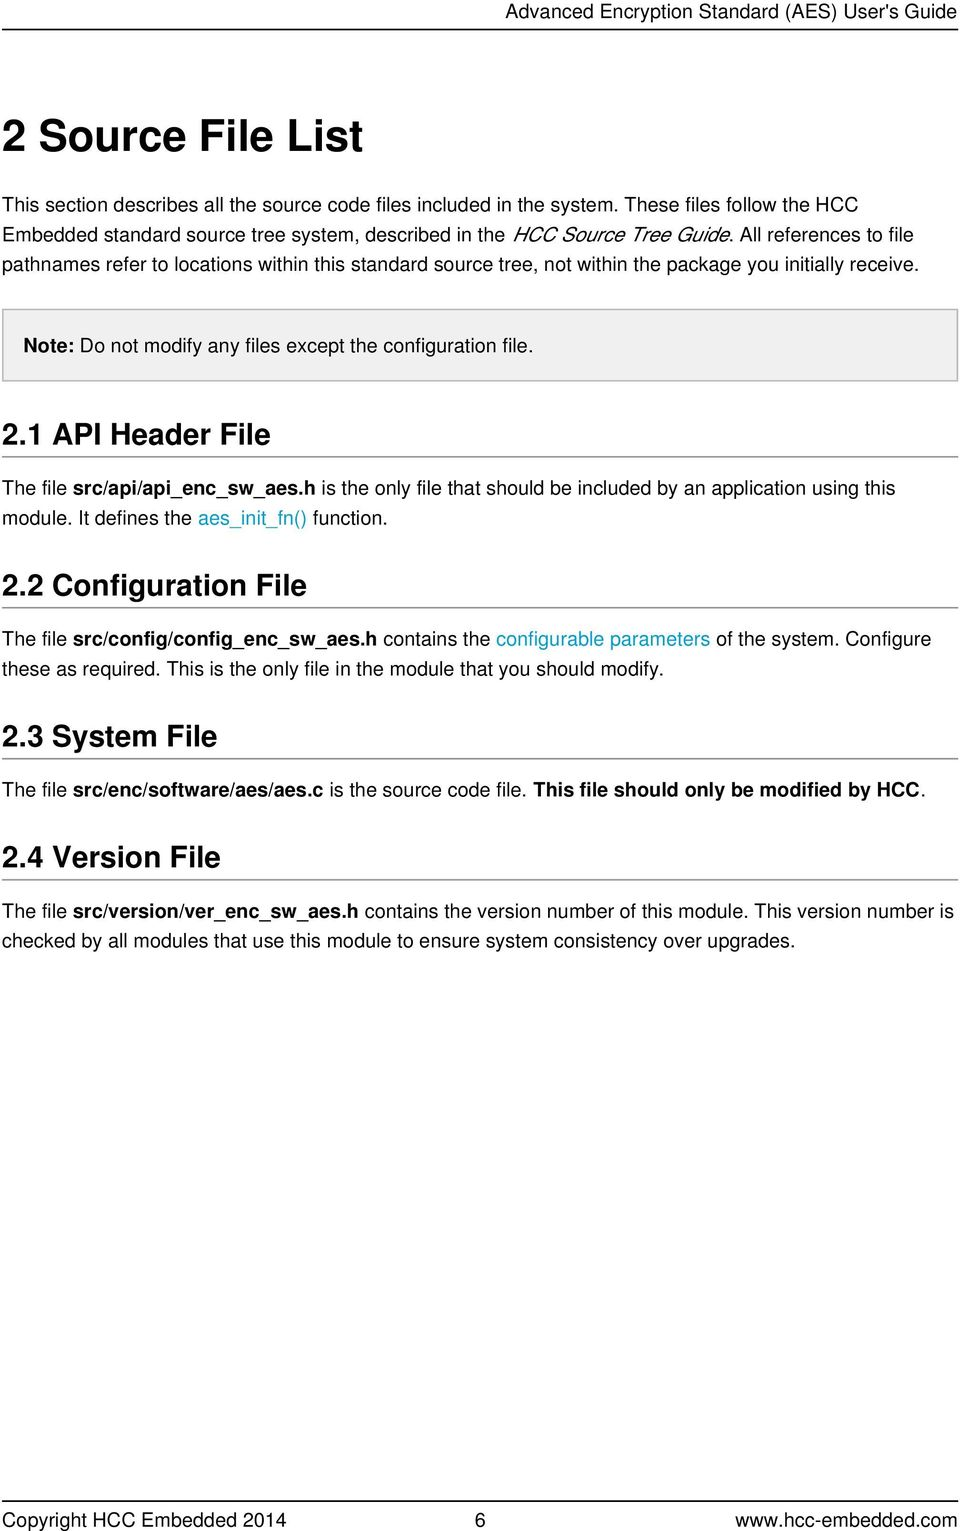 1 API Header File The file src/api/api_enc_sw_aes.h is the only file that should be included by an application using this module. It defines the aes_init_fn() function. 2.